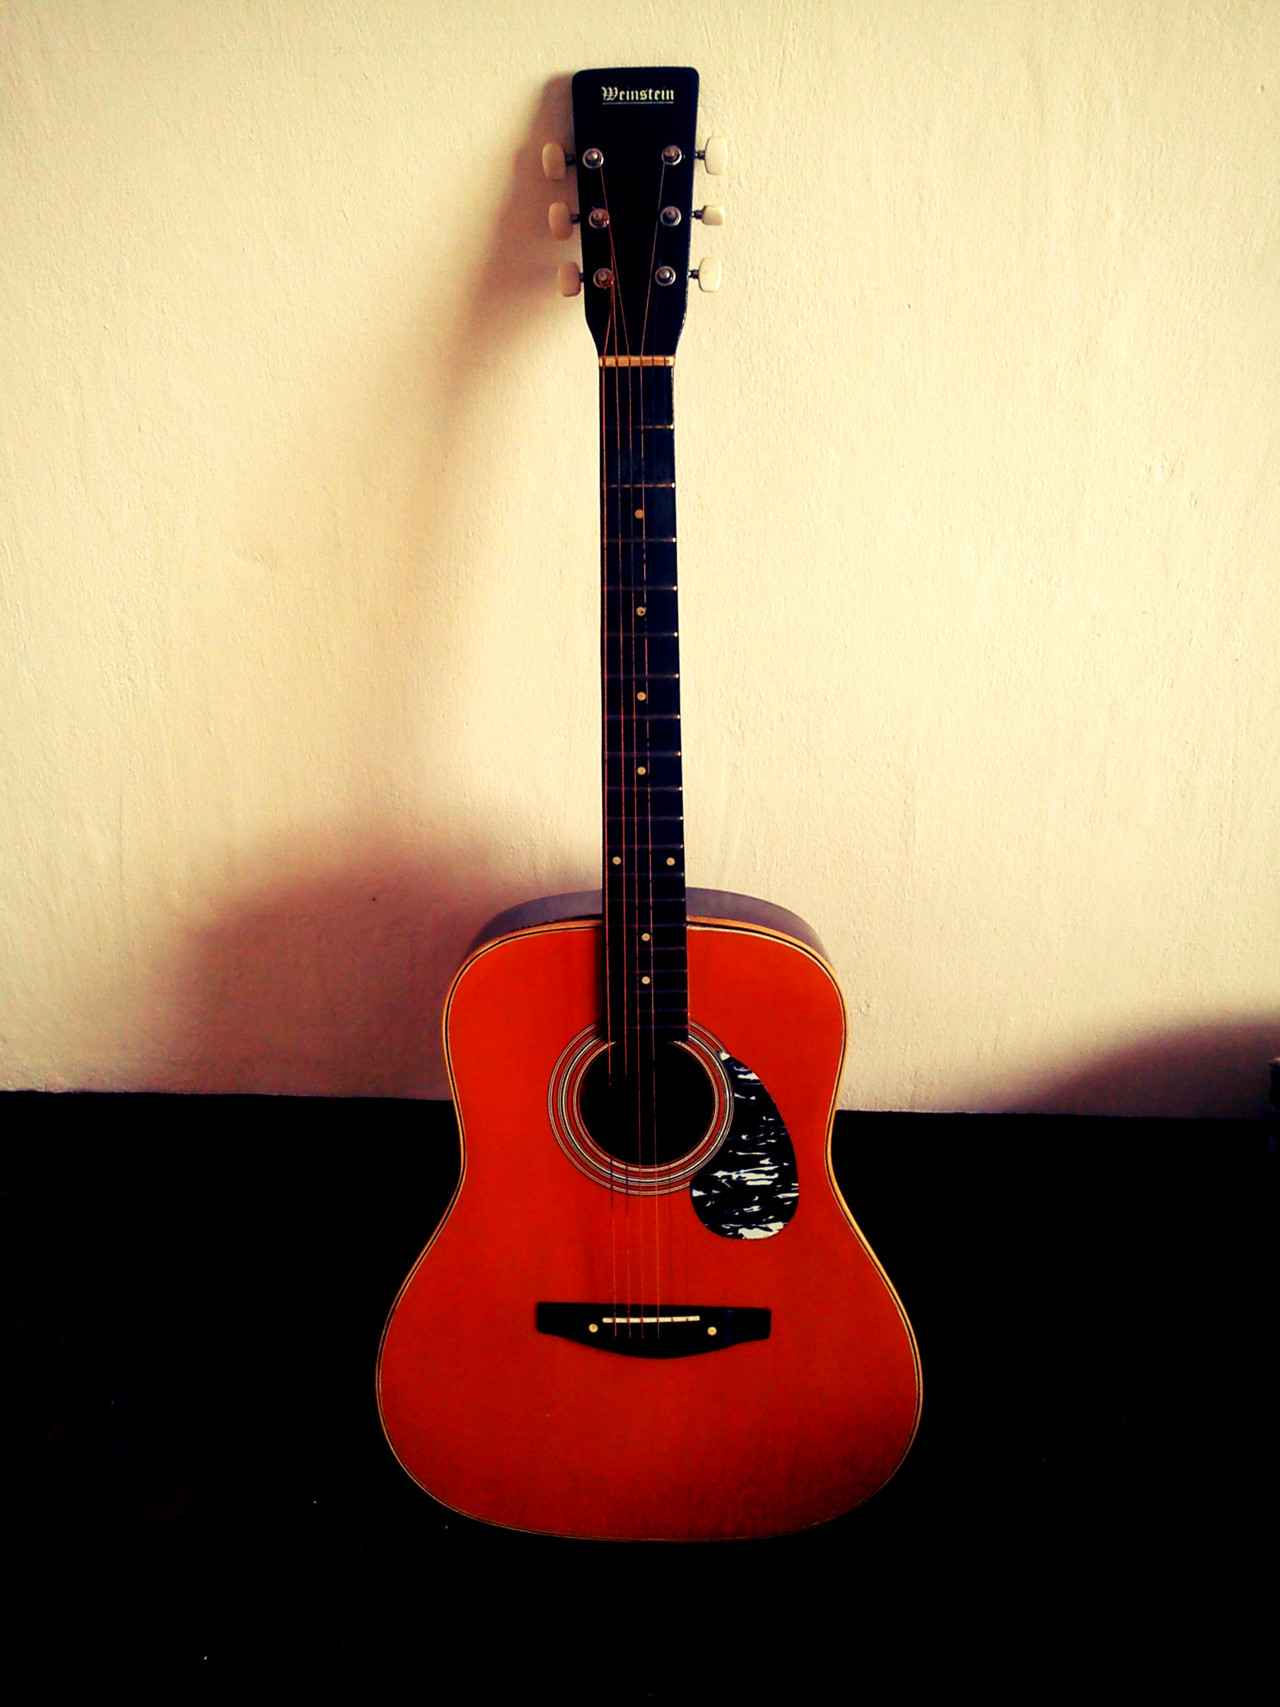 I first learned how to play the guitar when I was 14. :)